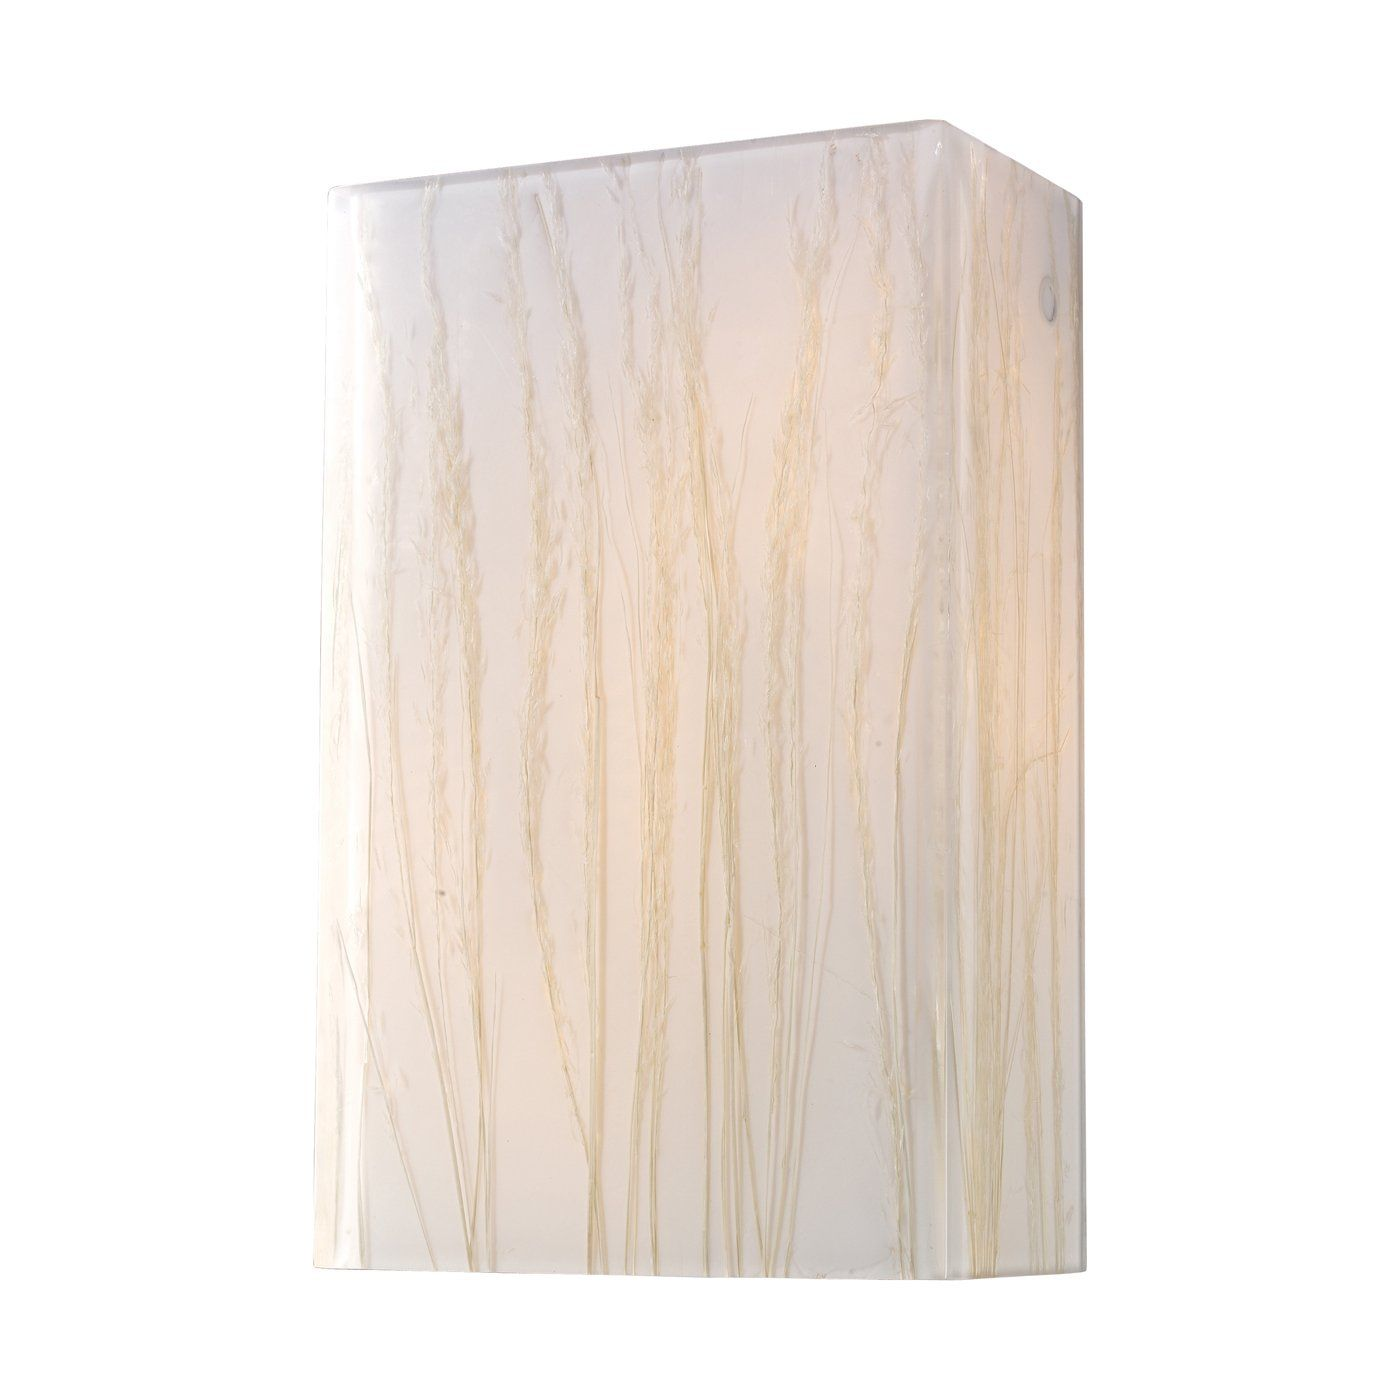 Elk lighting 190302 2 light modern organics white sawgrass wall elk lighting 190302 2 light modern organics white sawgrass wall sconce polished chrome amipublicfo Image collections